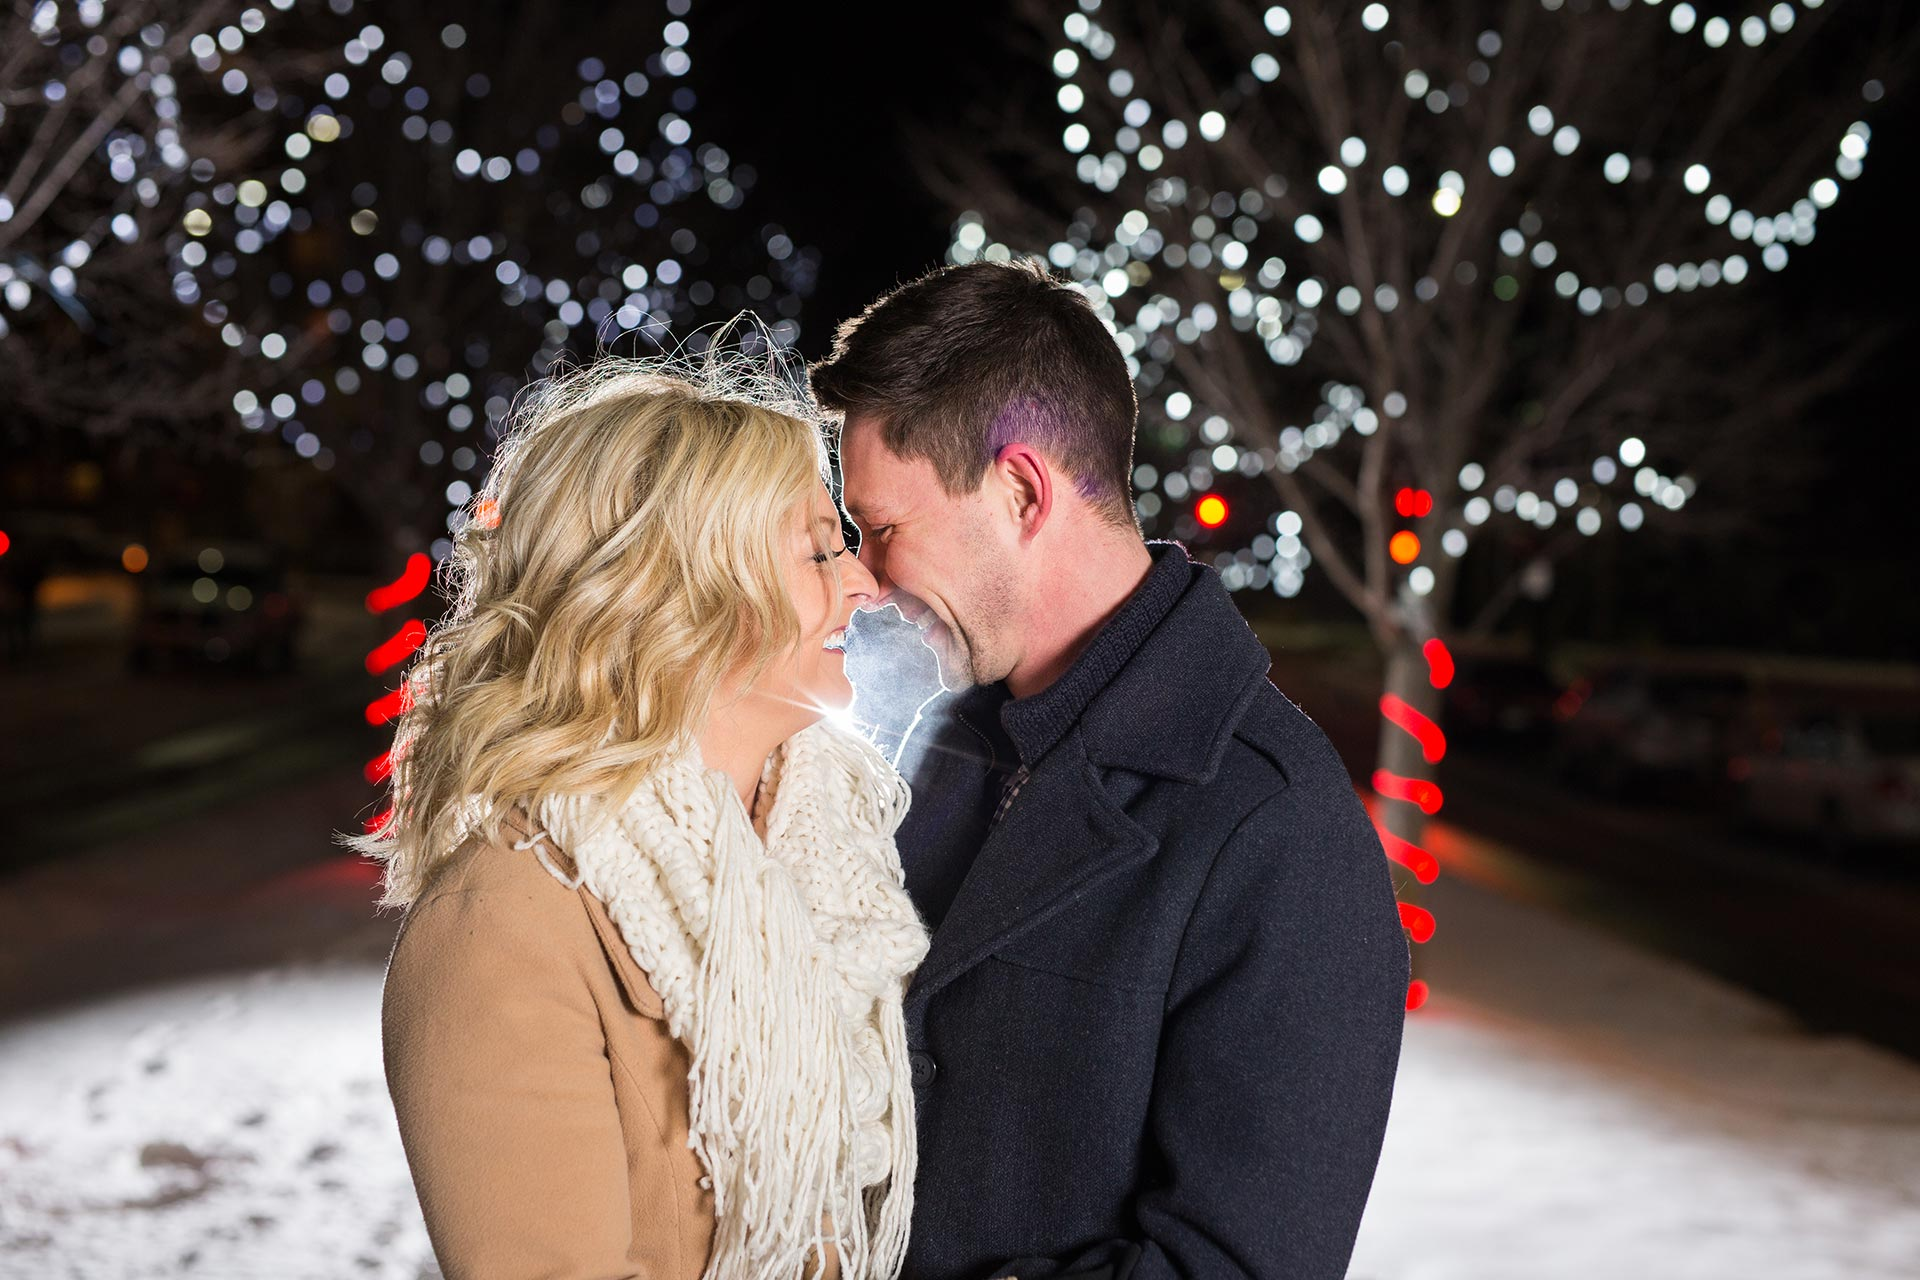 kerber-engaged-winter-christmas-uptown-normal-uptown-circle-illinois-state-university-isu-peoria central-illinois-bloomington-normal-wedding-engagement-photographer-photographers-photography.jpg